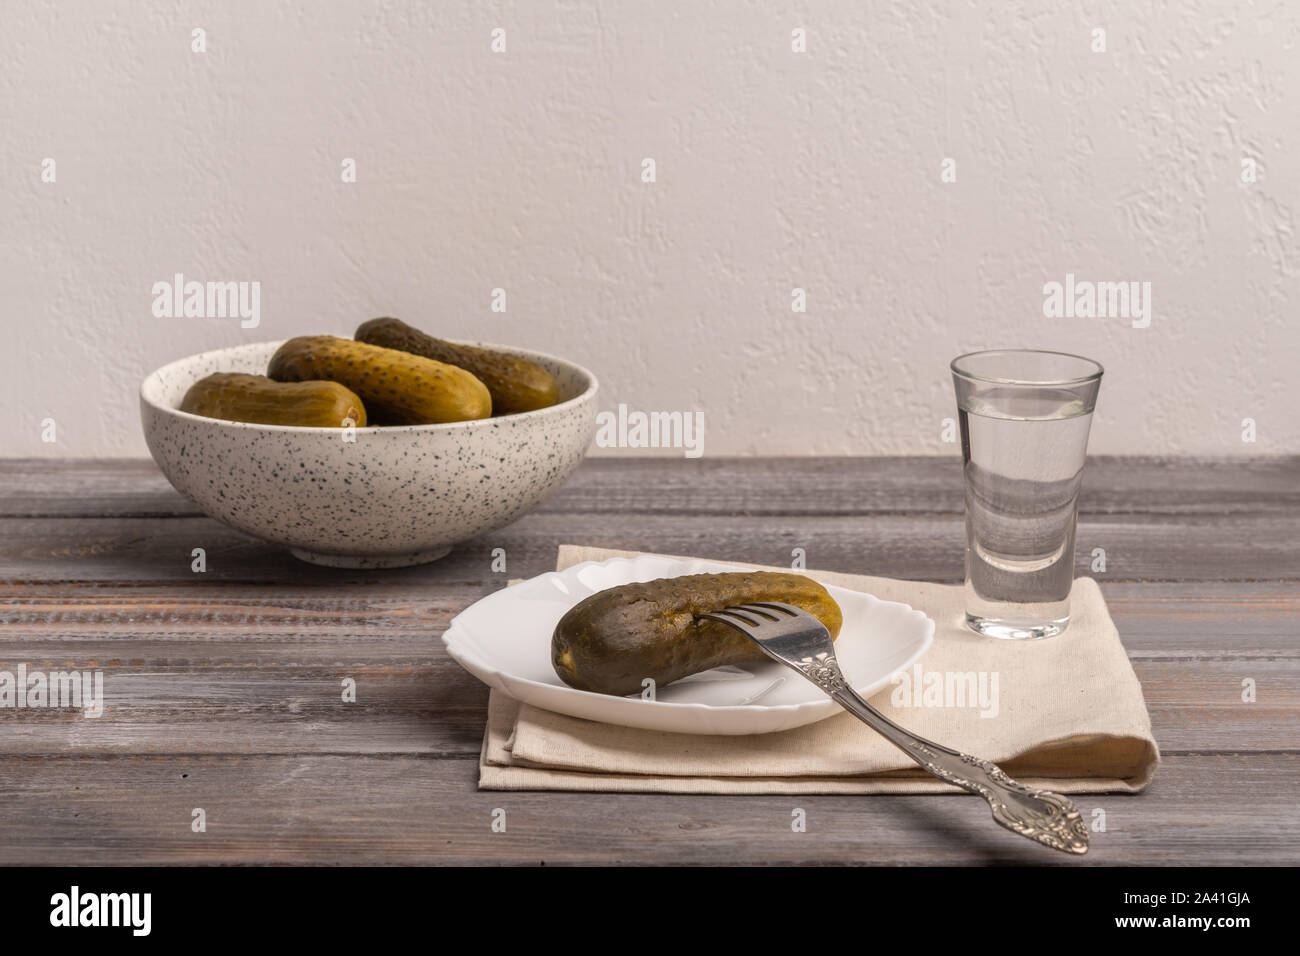 Traditional Russian snack - a glass of vodka and pickles. Rustic style Stock Photo